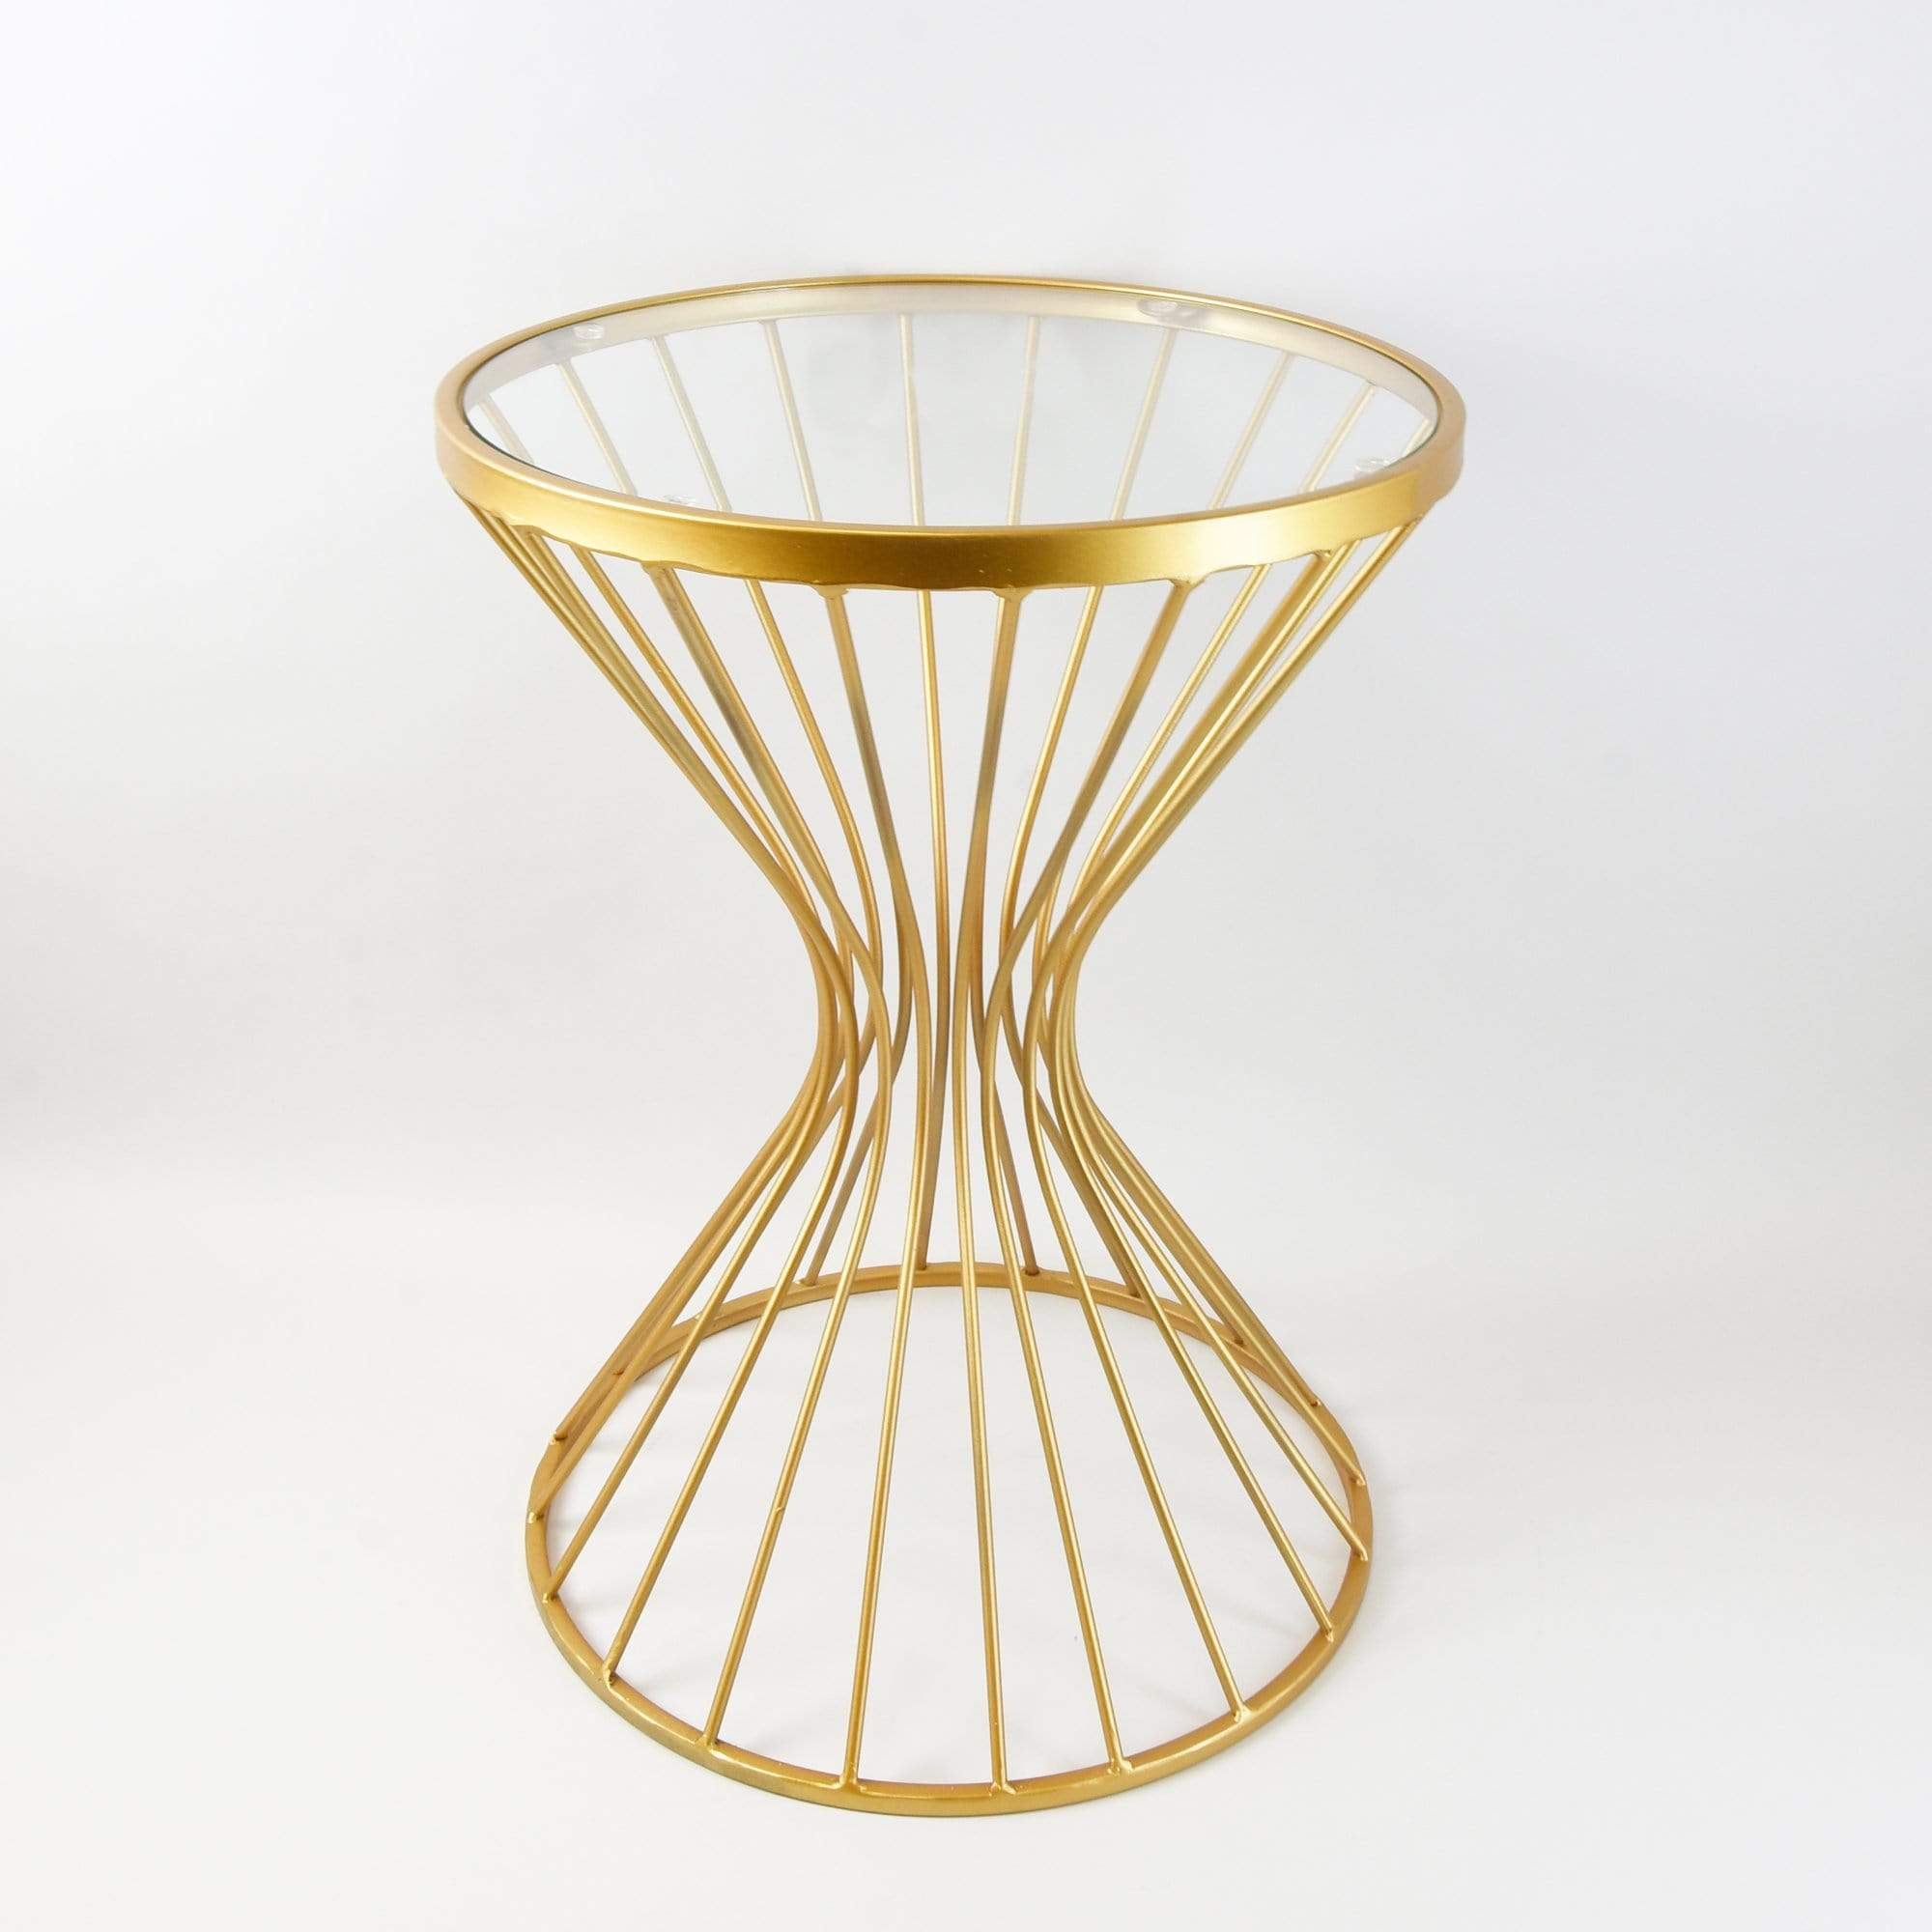 Small Metal Hourglass Table with Glass Top - Gold